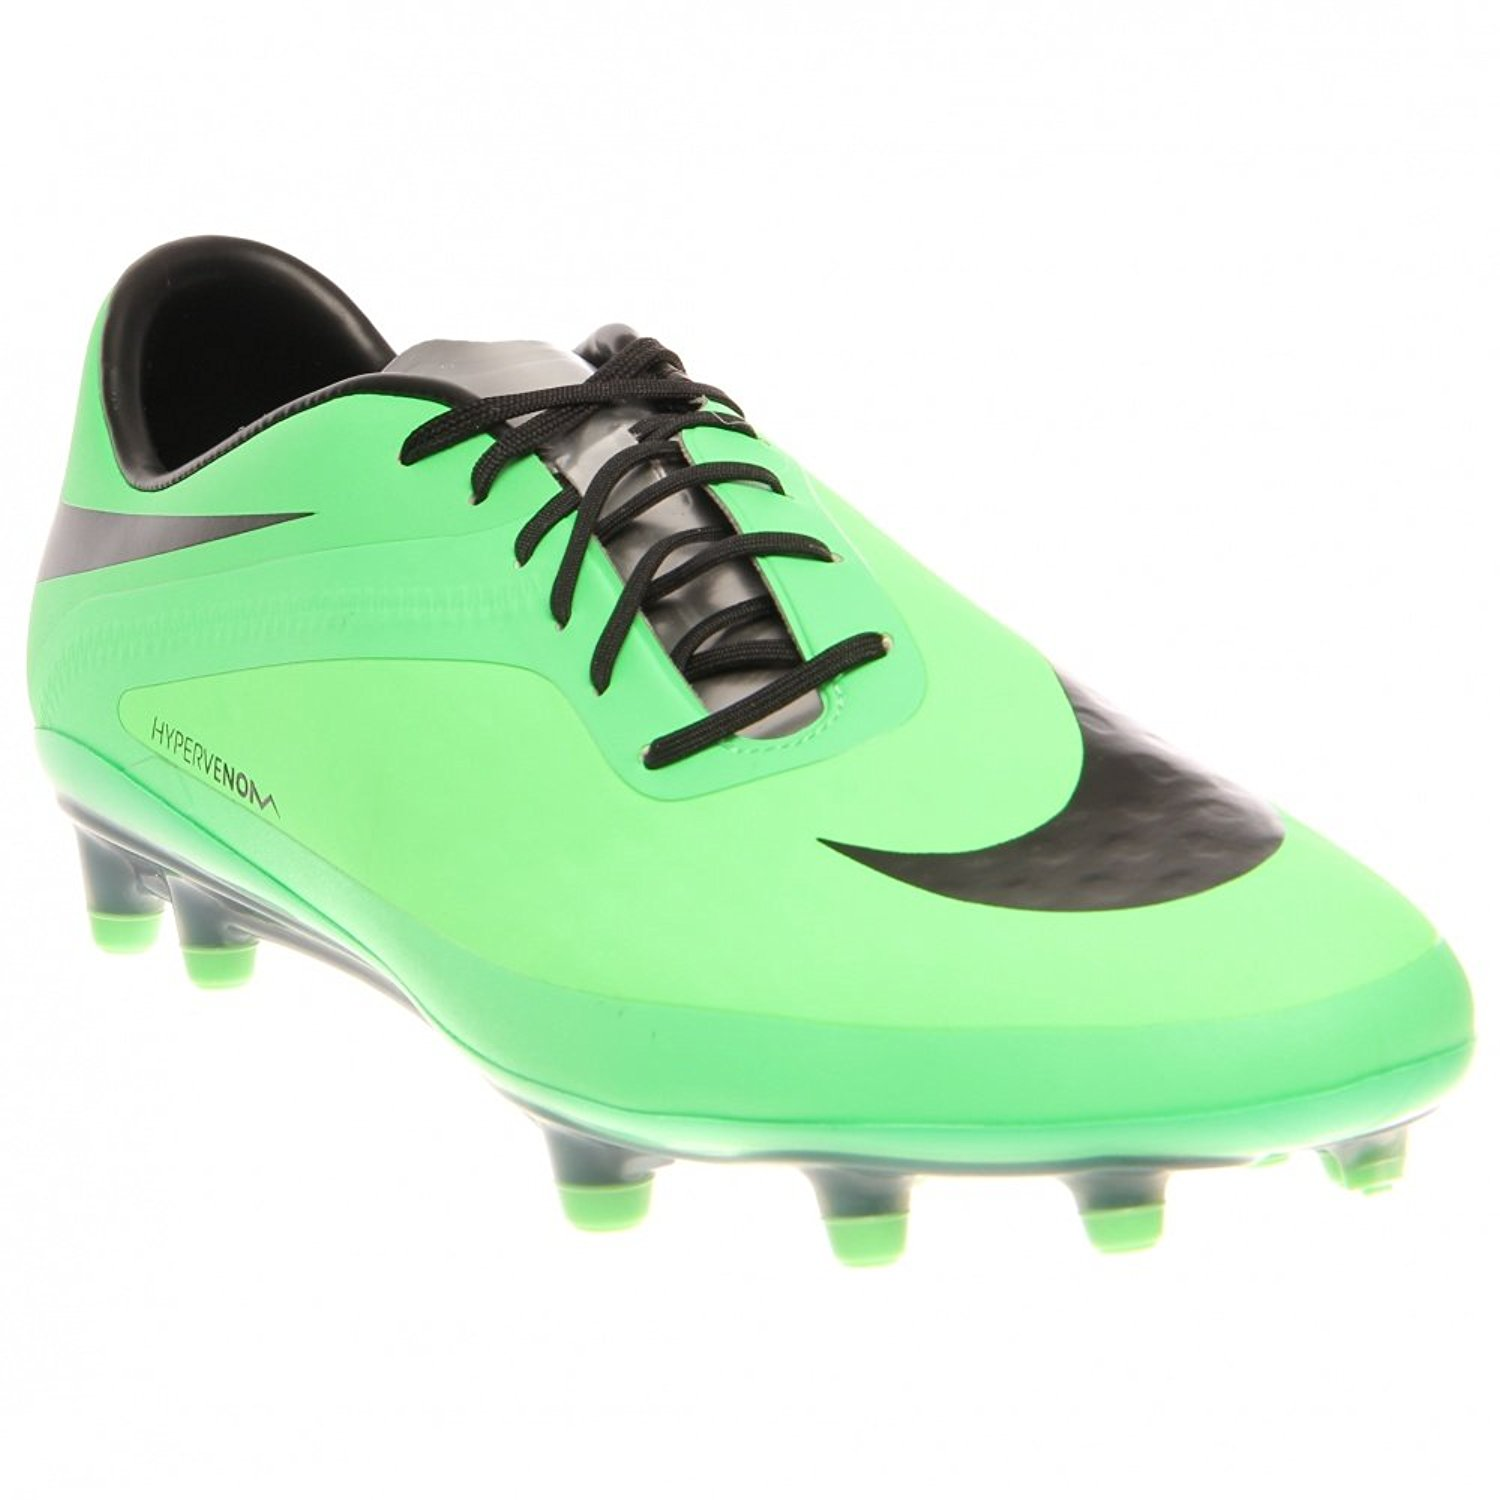 0fb758bf6ae Get Quotations · Nike Hypervenom Phatal FG - Neo Lime Total Crimson Black